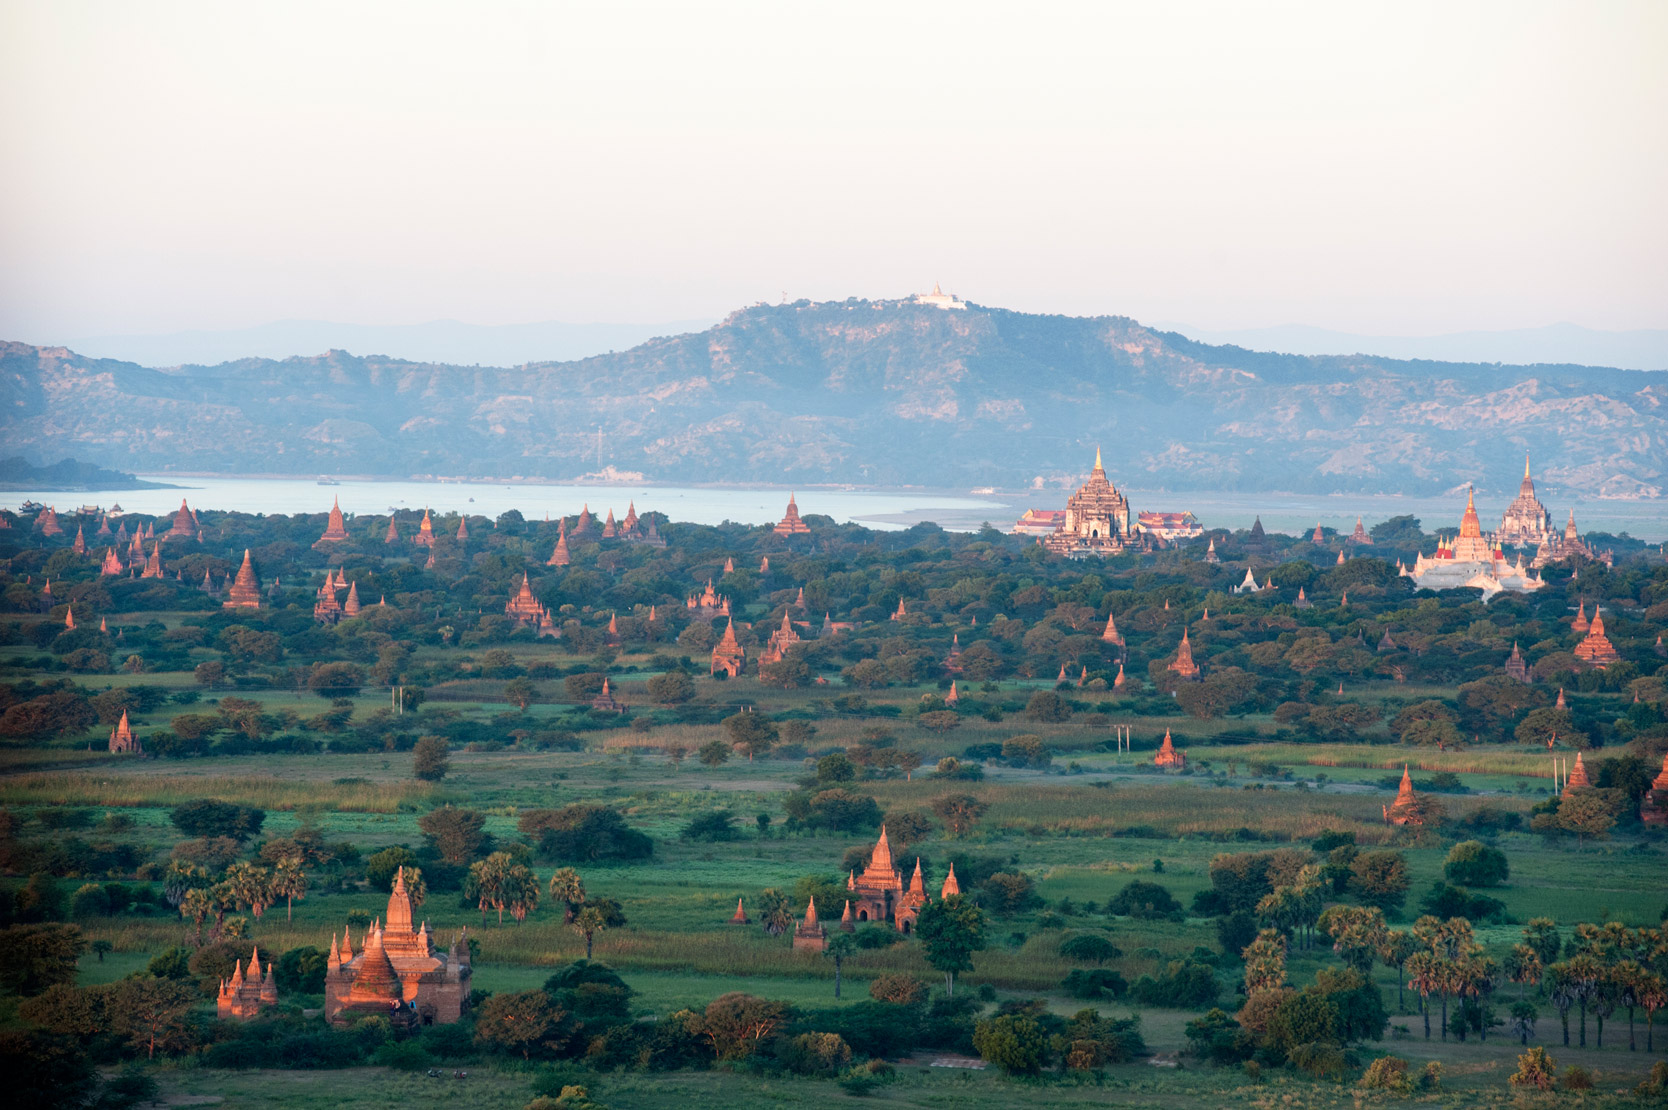 Early morning sunshine over the terracotta temples of Bagan, the Irrawaddy river in the distance, Bagan, Mandalay Division.